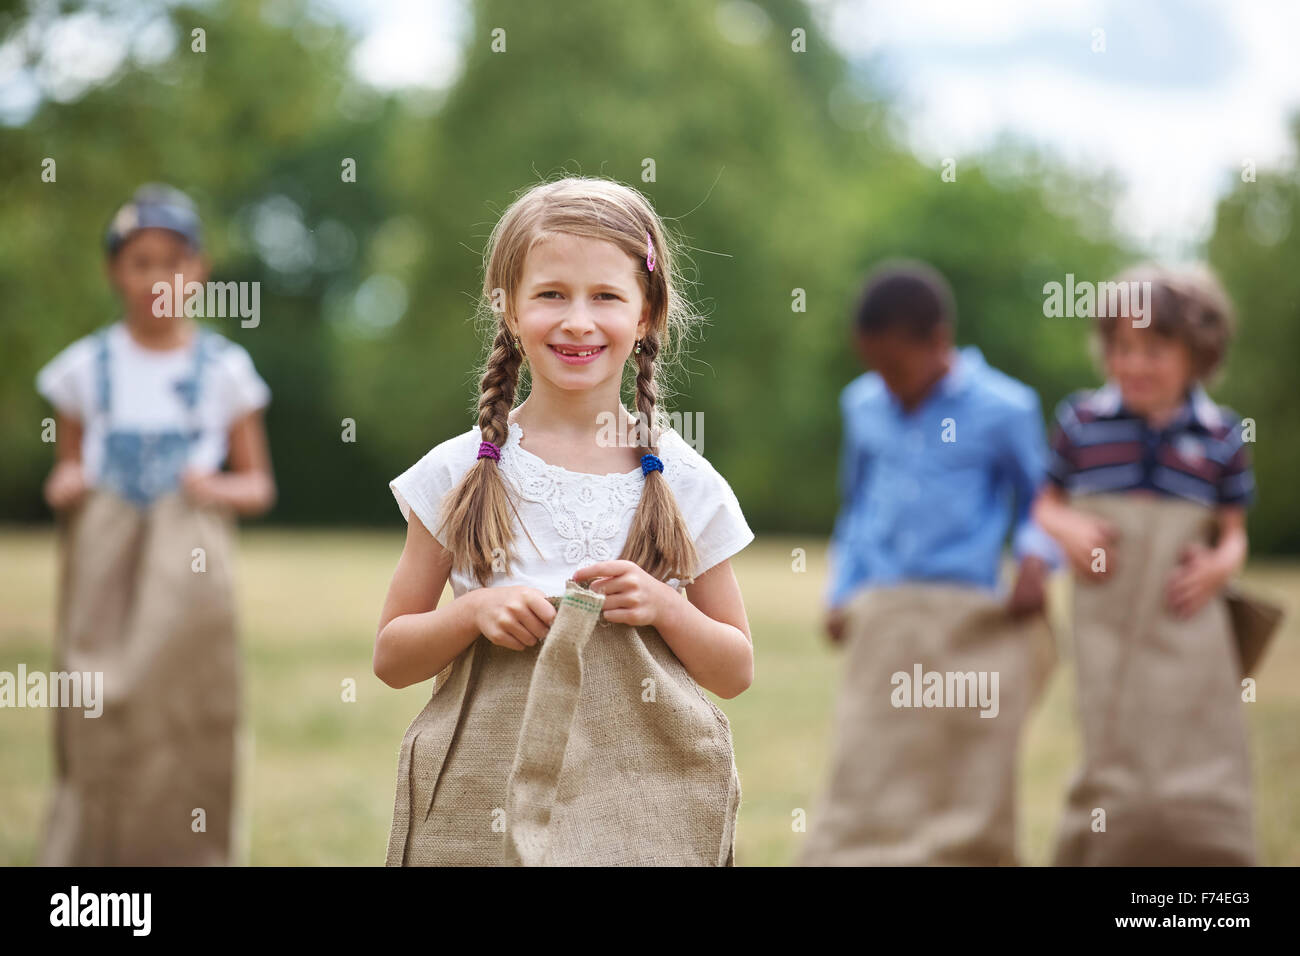 Happy girl with braided hair at sack race smiling - Stock Image